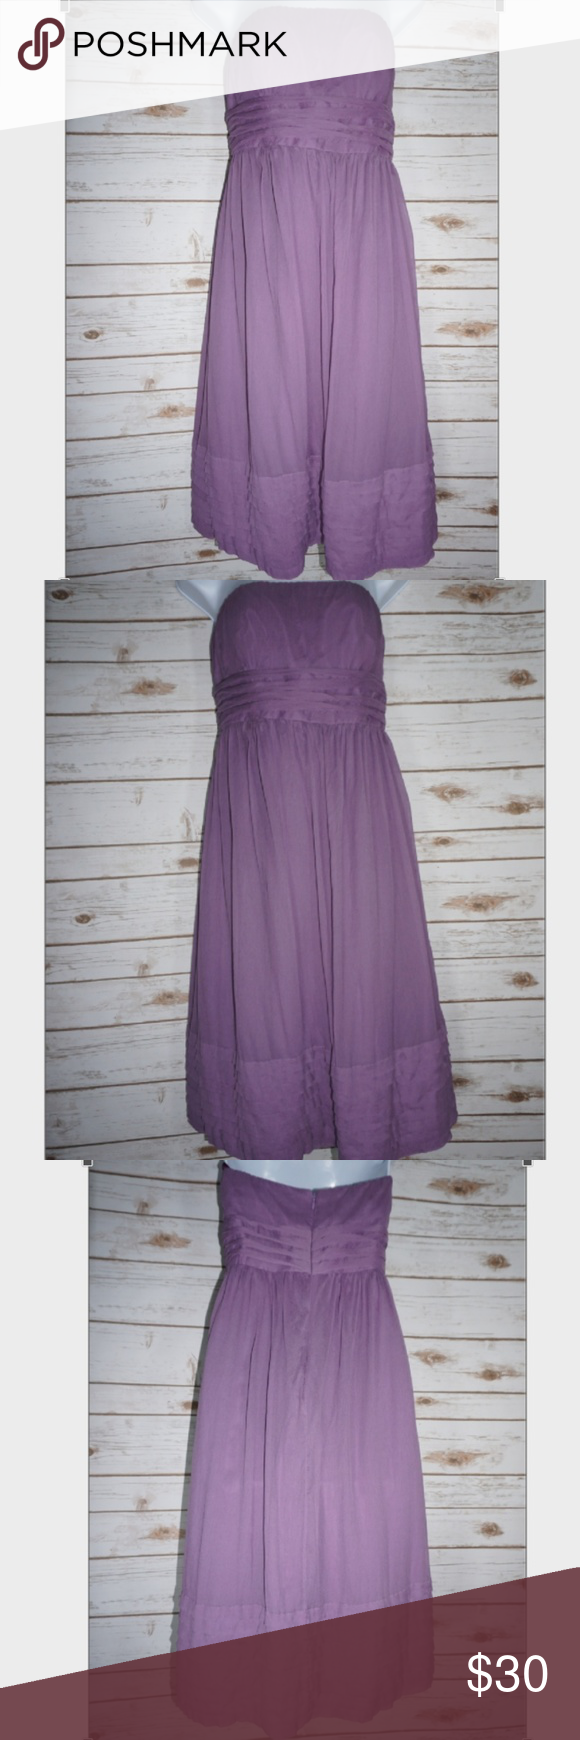 J crew dress strapless dress strapless dress chiffon dress and